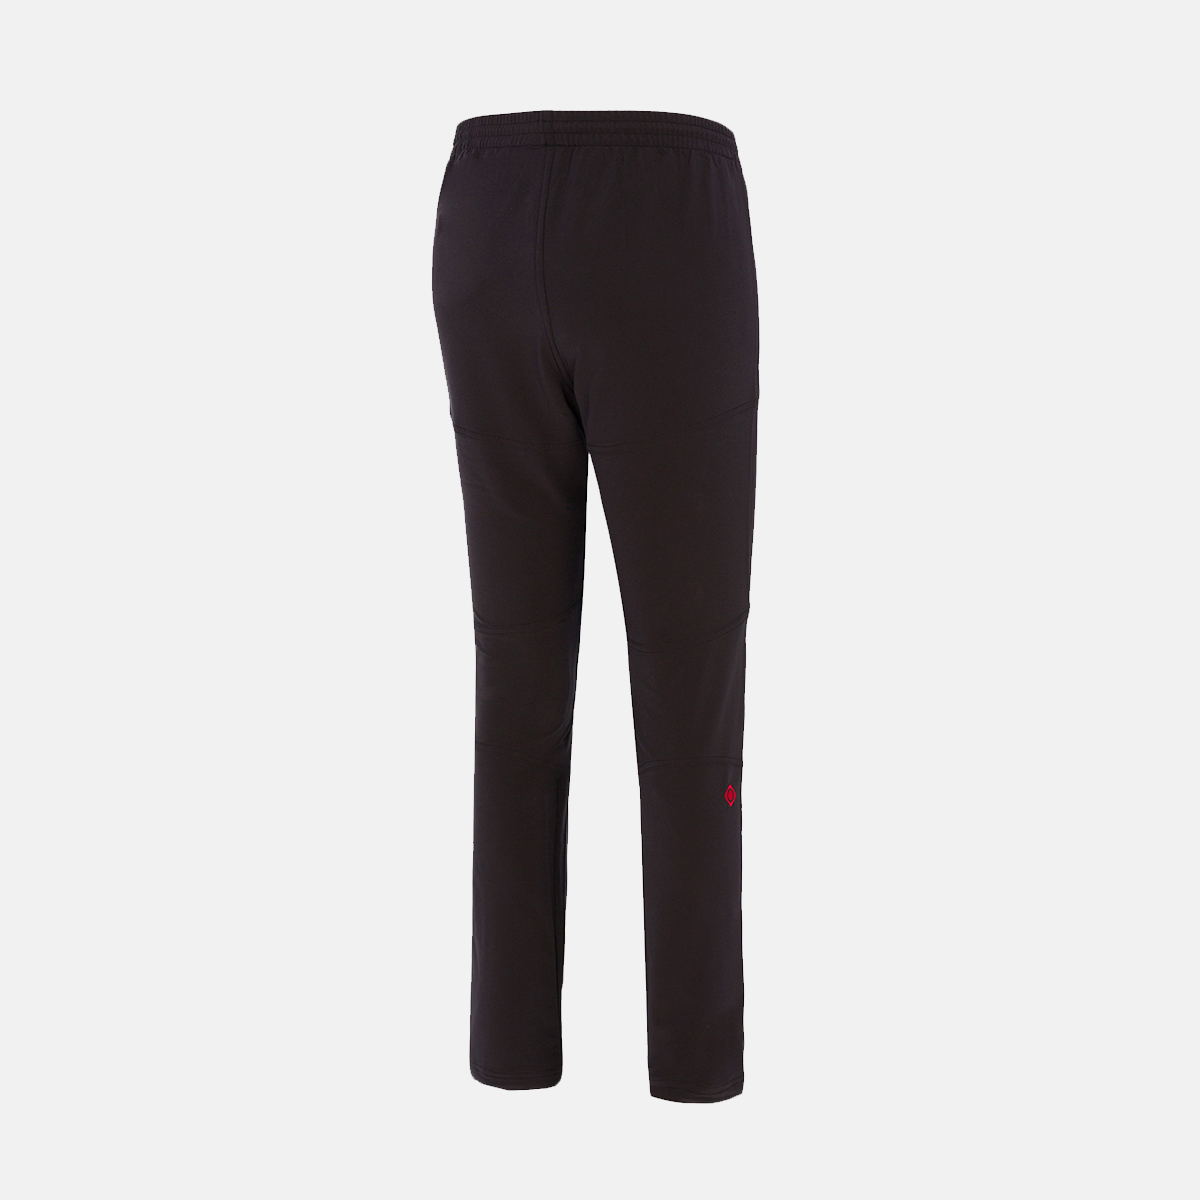 MAN'S CLOISTER MOUNT STRETCH PANT BLACK